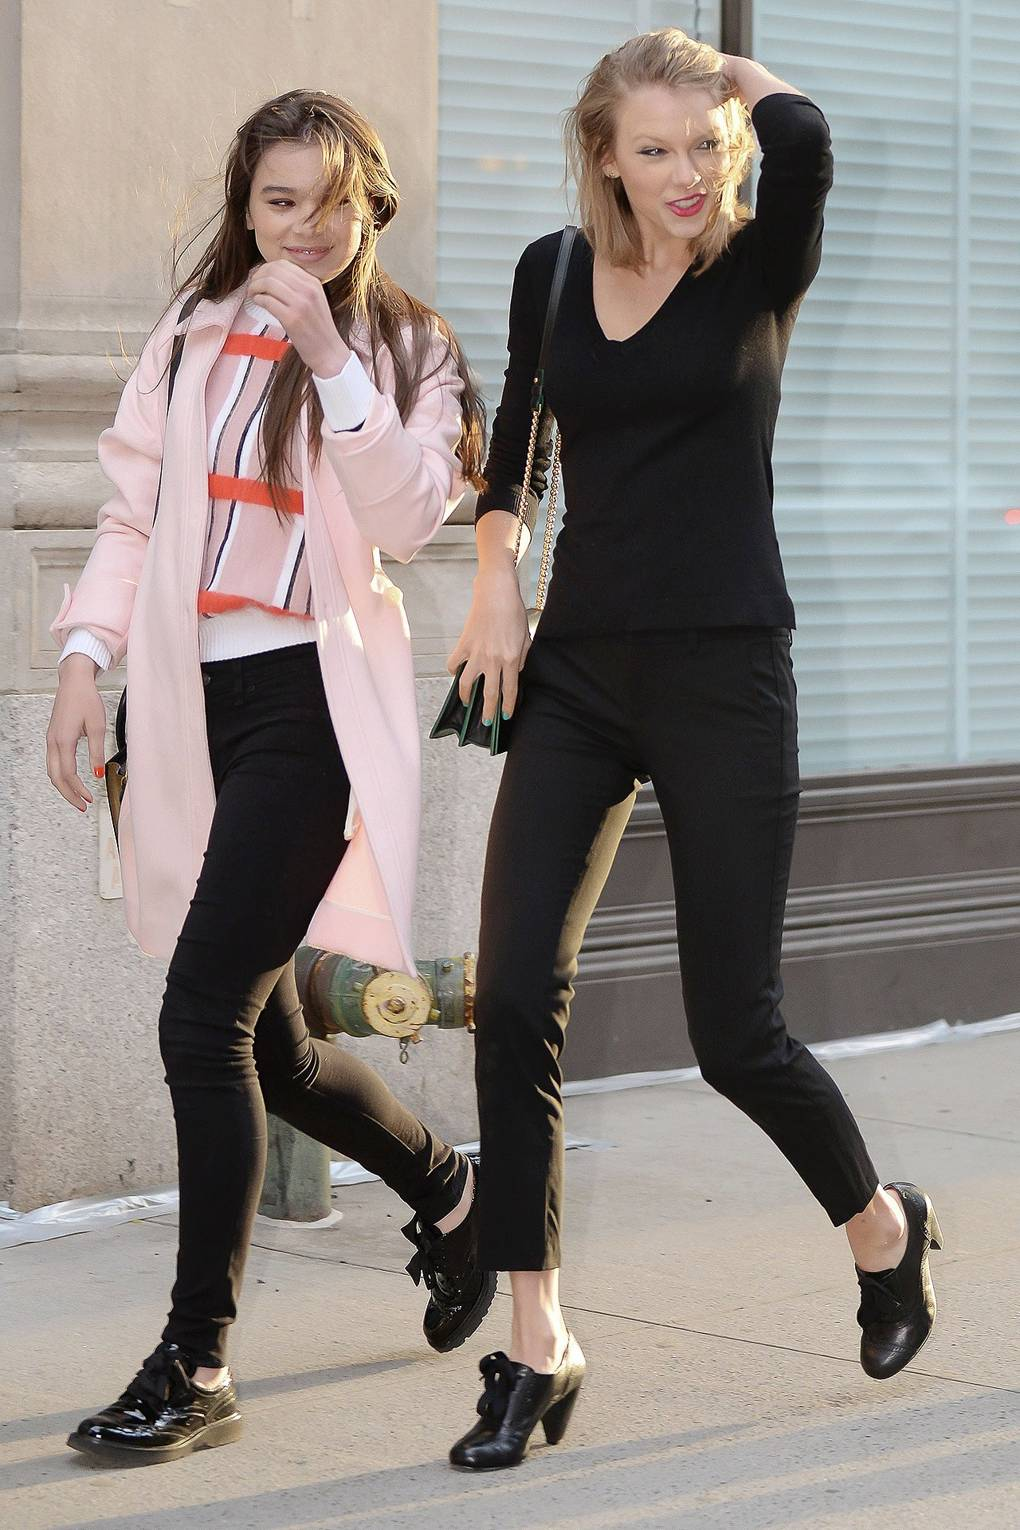 Taylor Swift And Hailee Steinfeld Friendship Pictures 2014 Glamour Uk